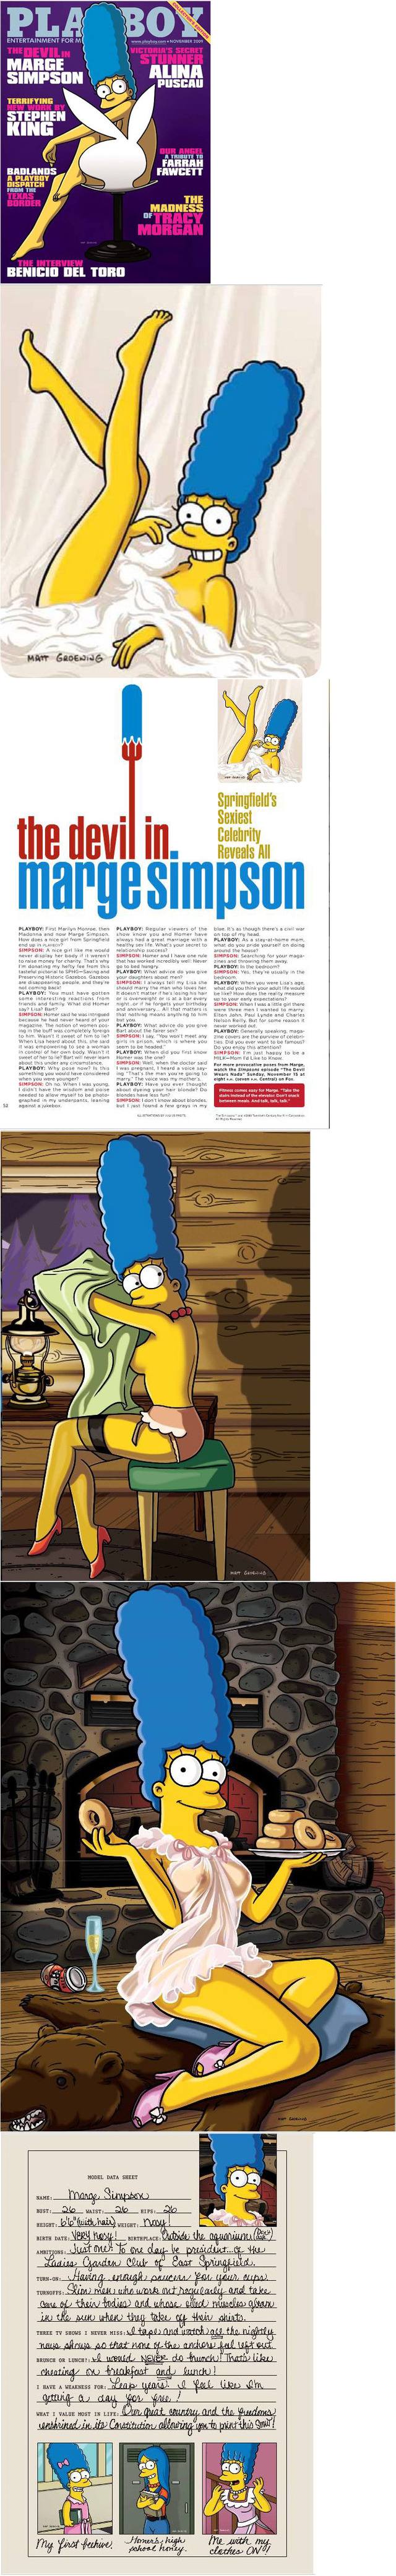 lisa and marge simpsons nude posing porn users fansites news rorschachsrants temp